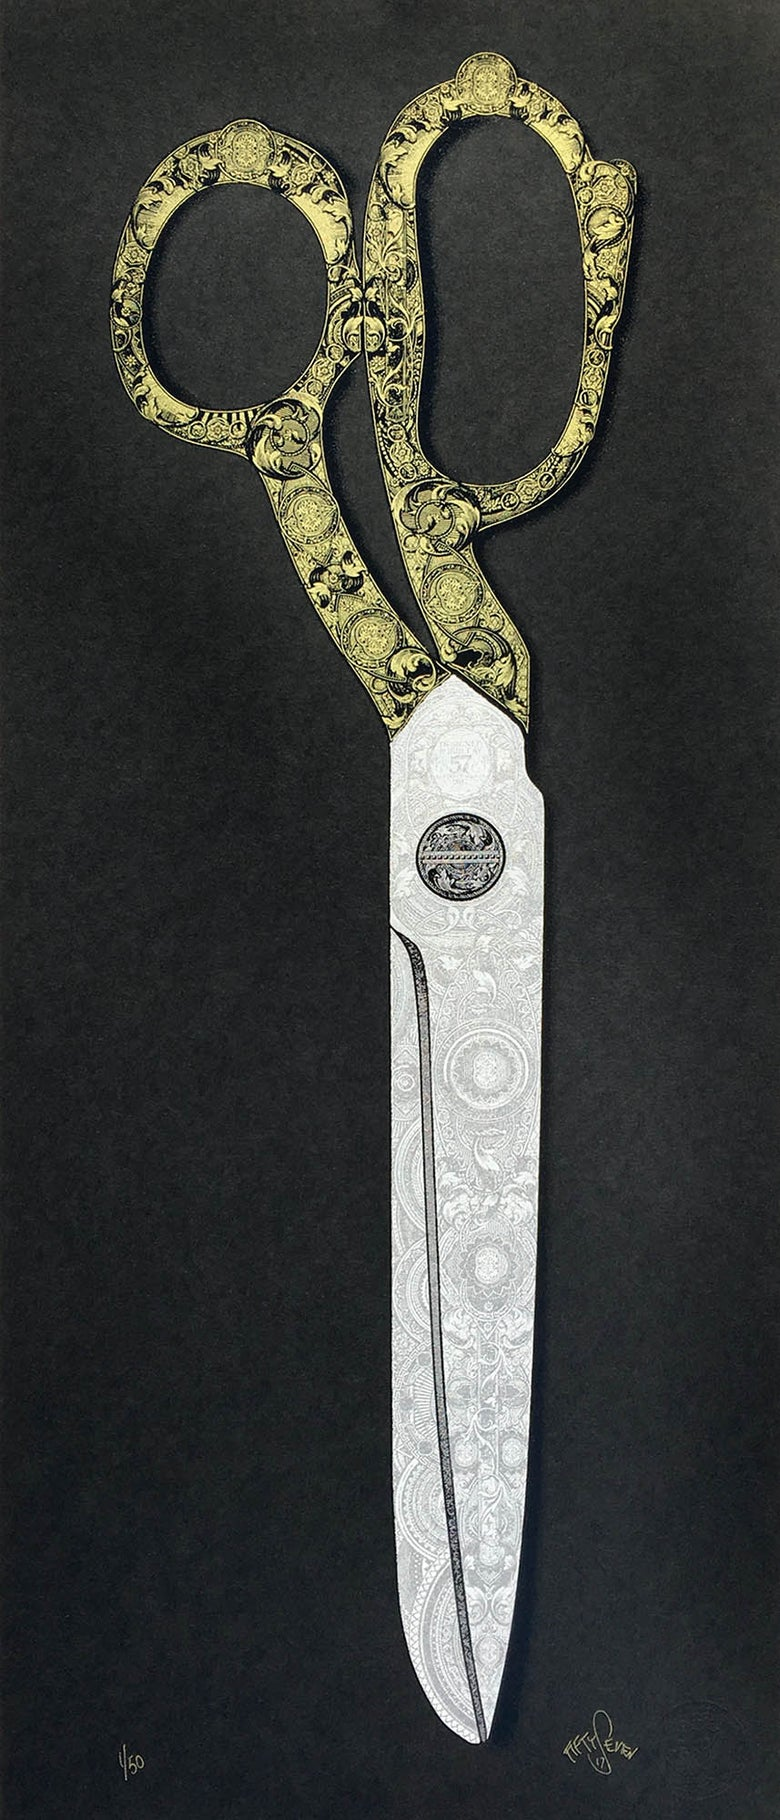 Image of Scissors